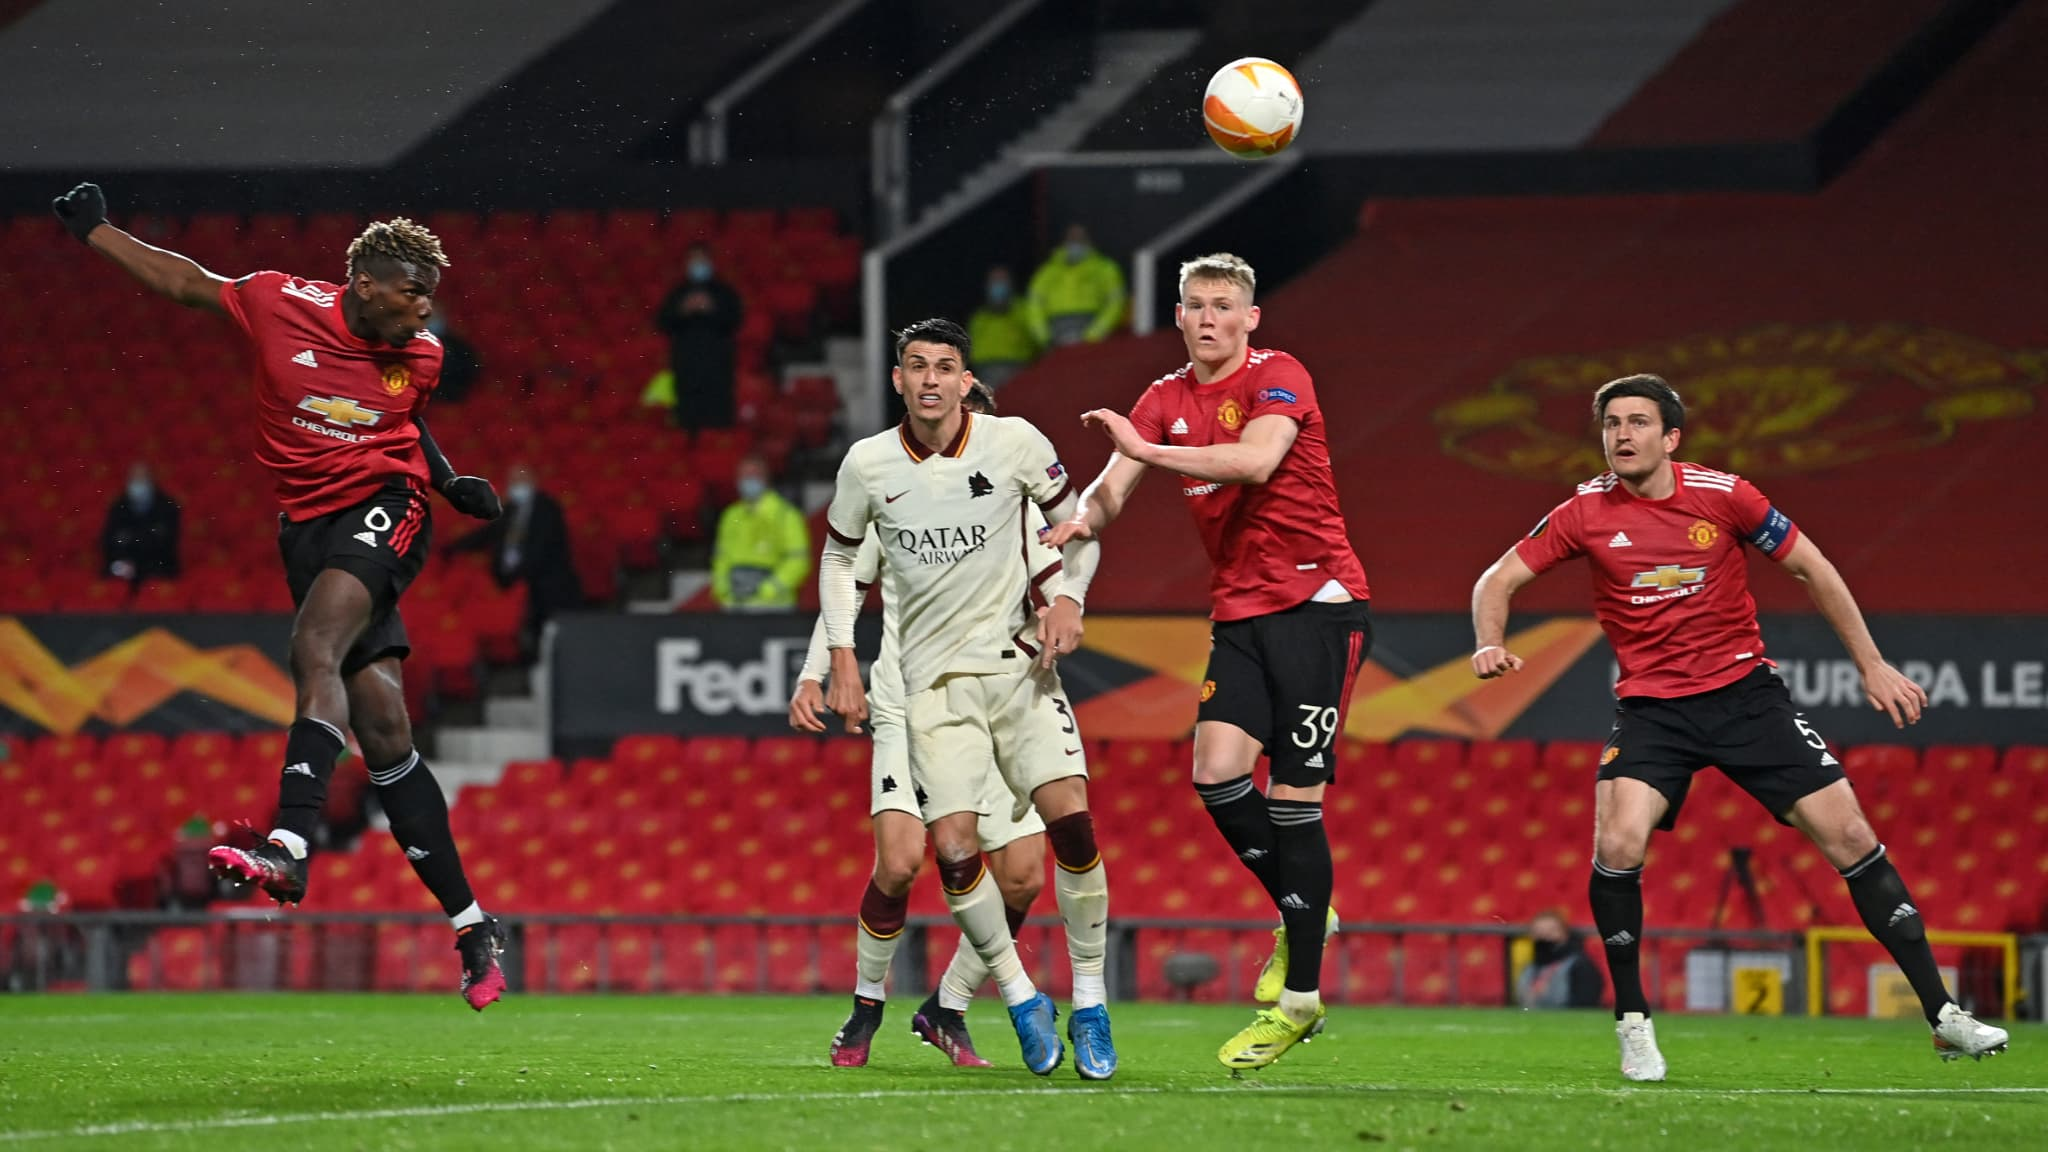 Europa League: rain of goals, Cavani ultra decisive, Manchester United  atomizes Roma in the first half | The Indian Paper